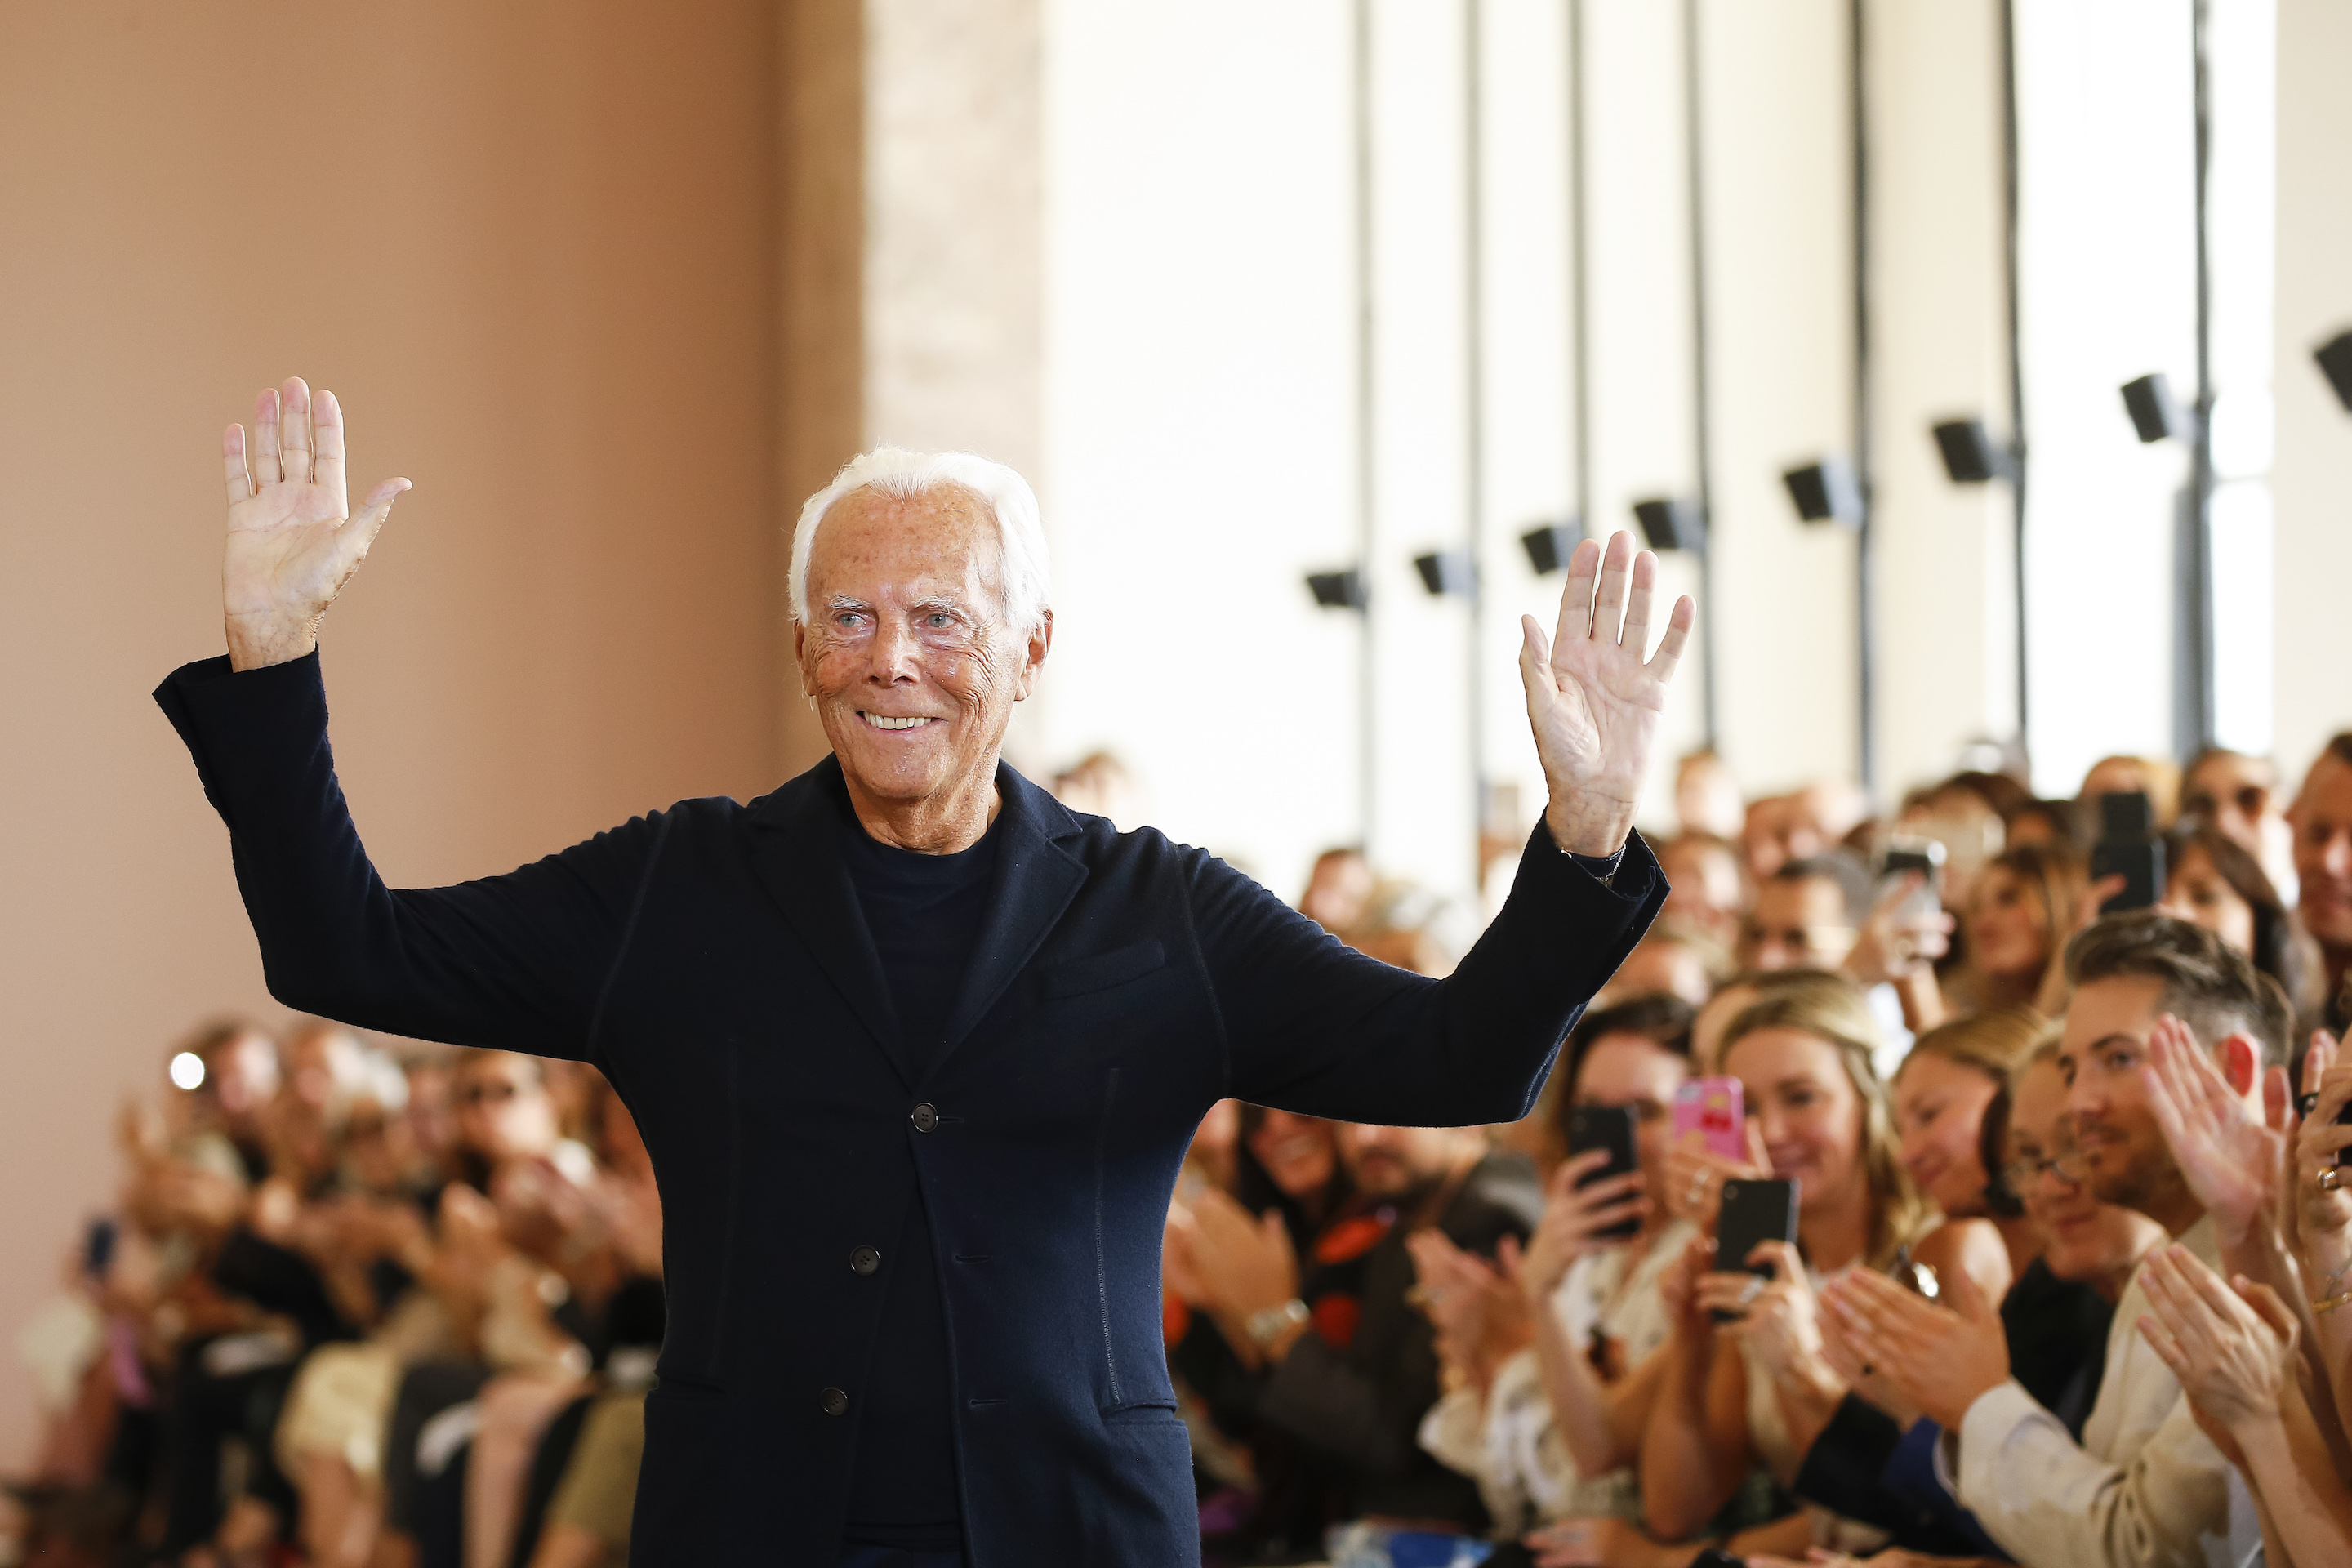 Italian designer Giorgio Armani earlier this month after his Giorgio Armani Prive fashion show during Paris fashion week for fall/winter 2019/2020.